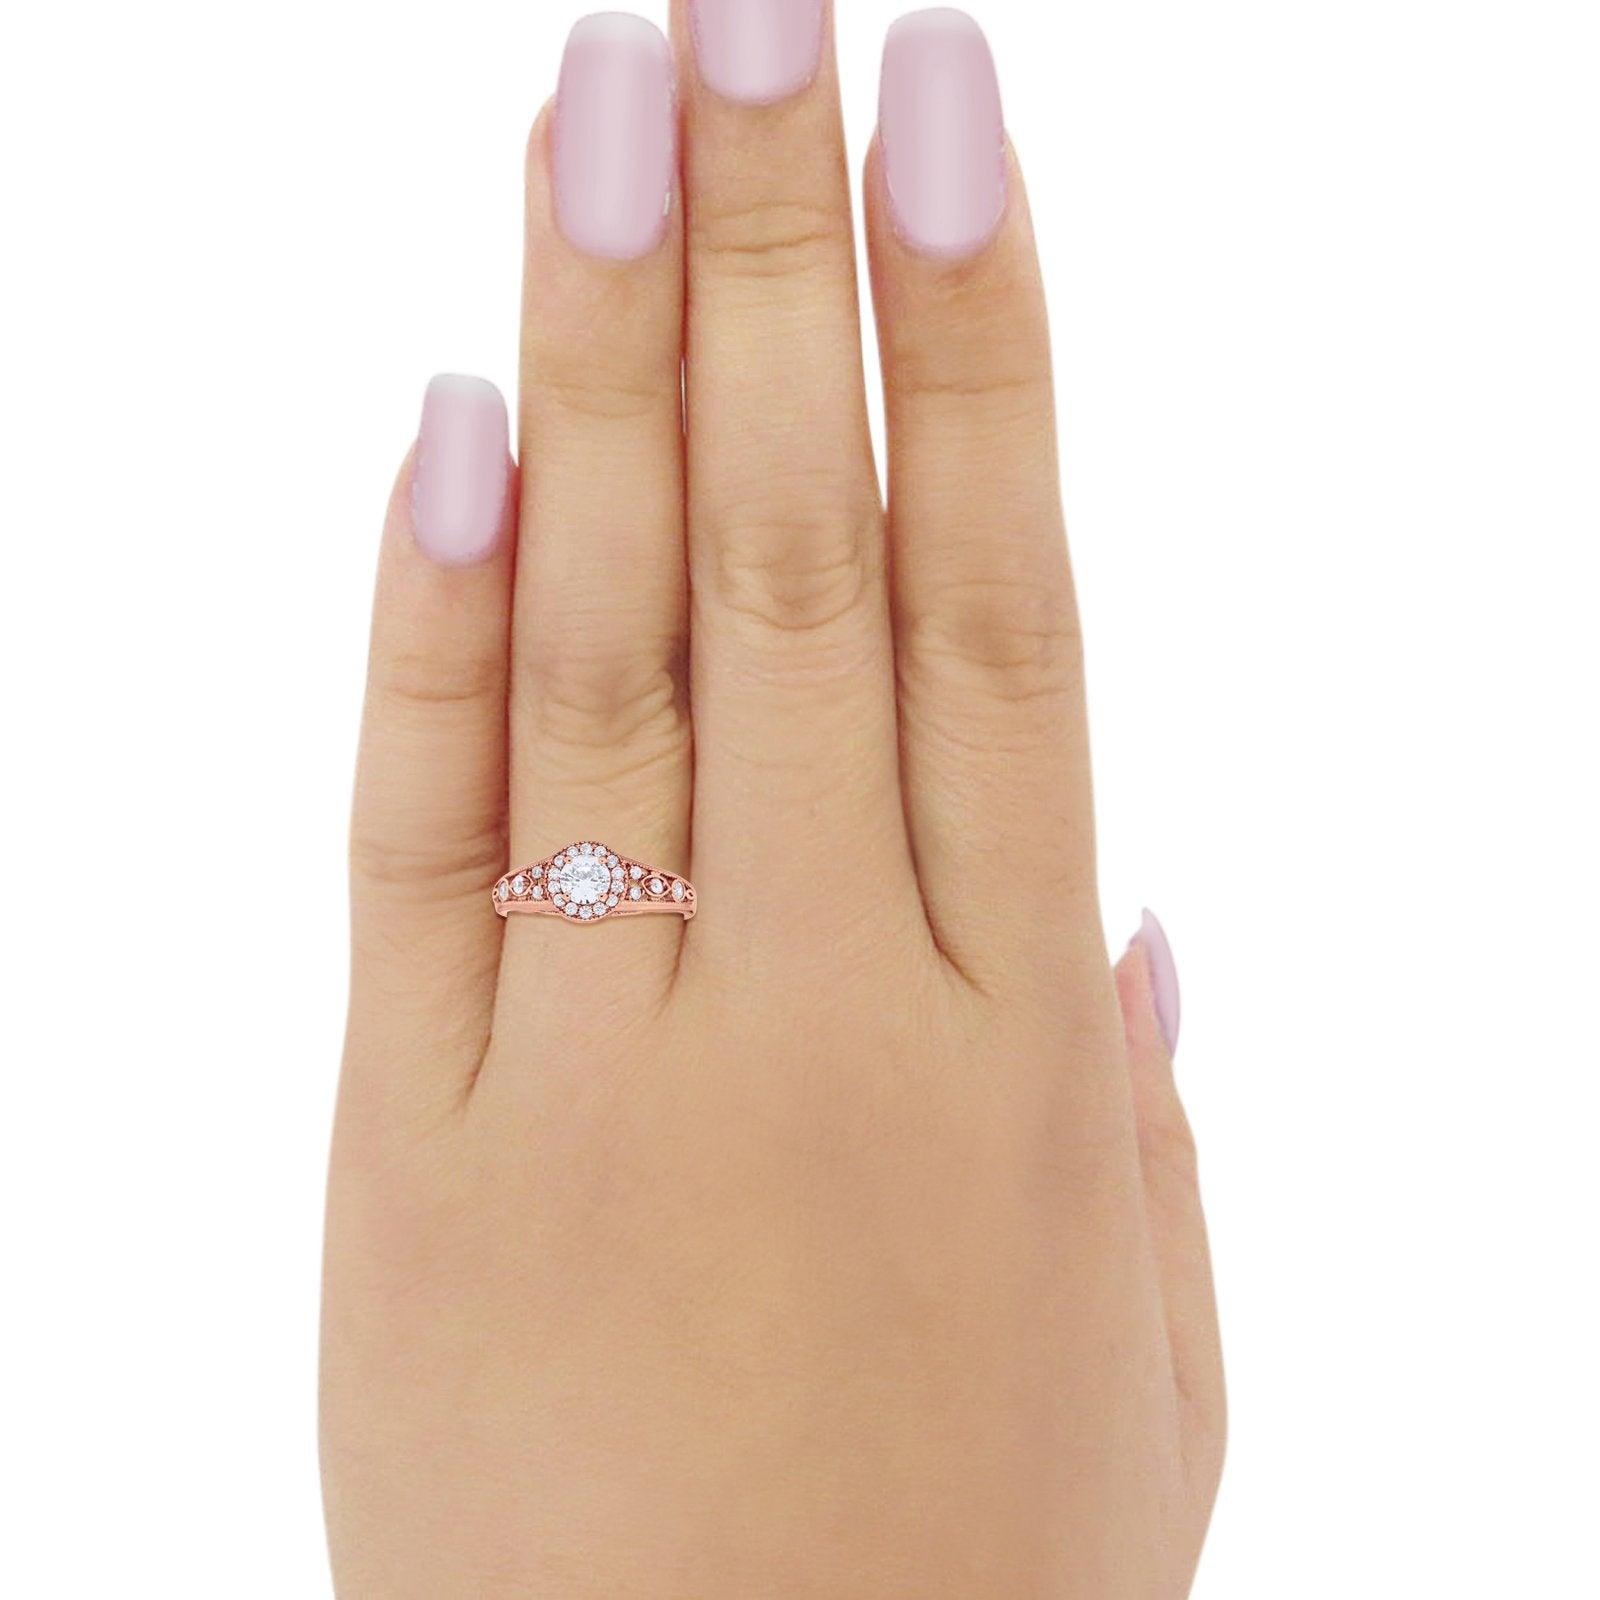 Vintage Style Engagement Ring Halo Rose Tone, Simulated Cubic Zirconia 925 Sterling Silver